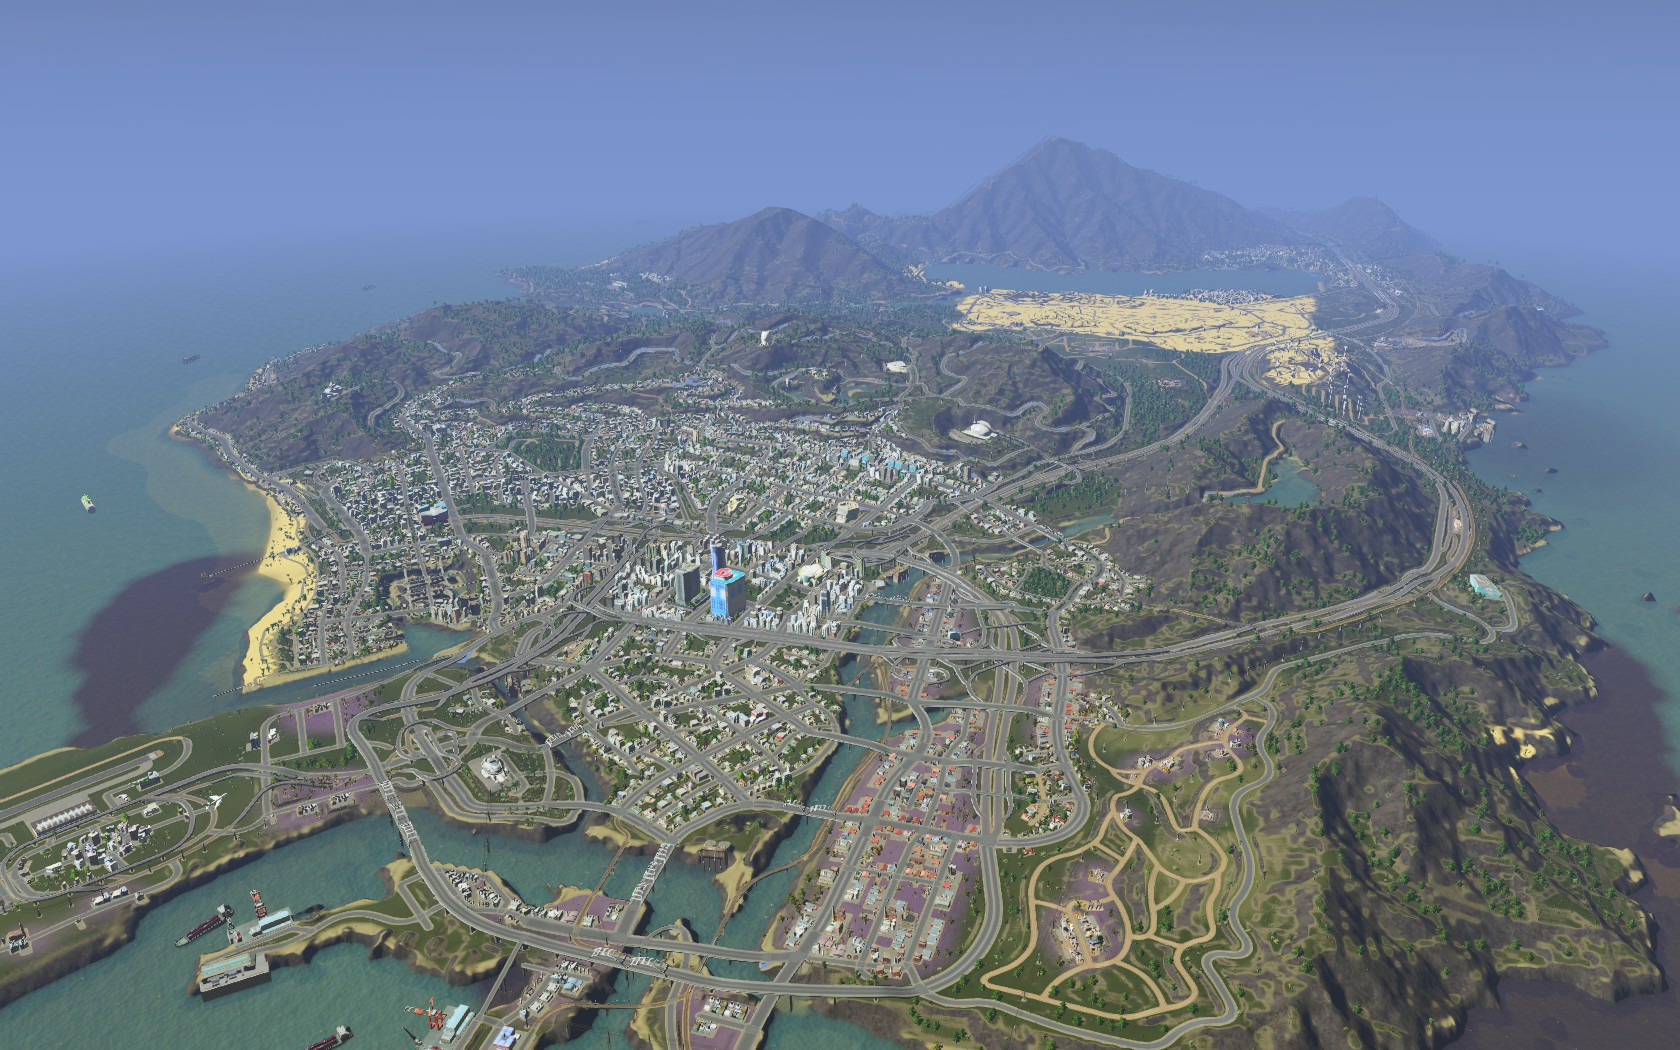 Gta v pc in cities skylines by stratocracy on deviantart in cities skylines by stratocracy gumiabroncs Gallery